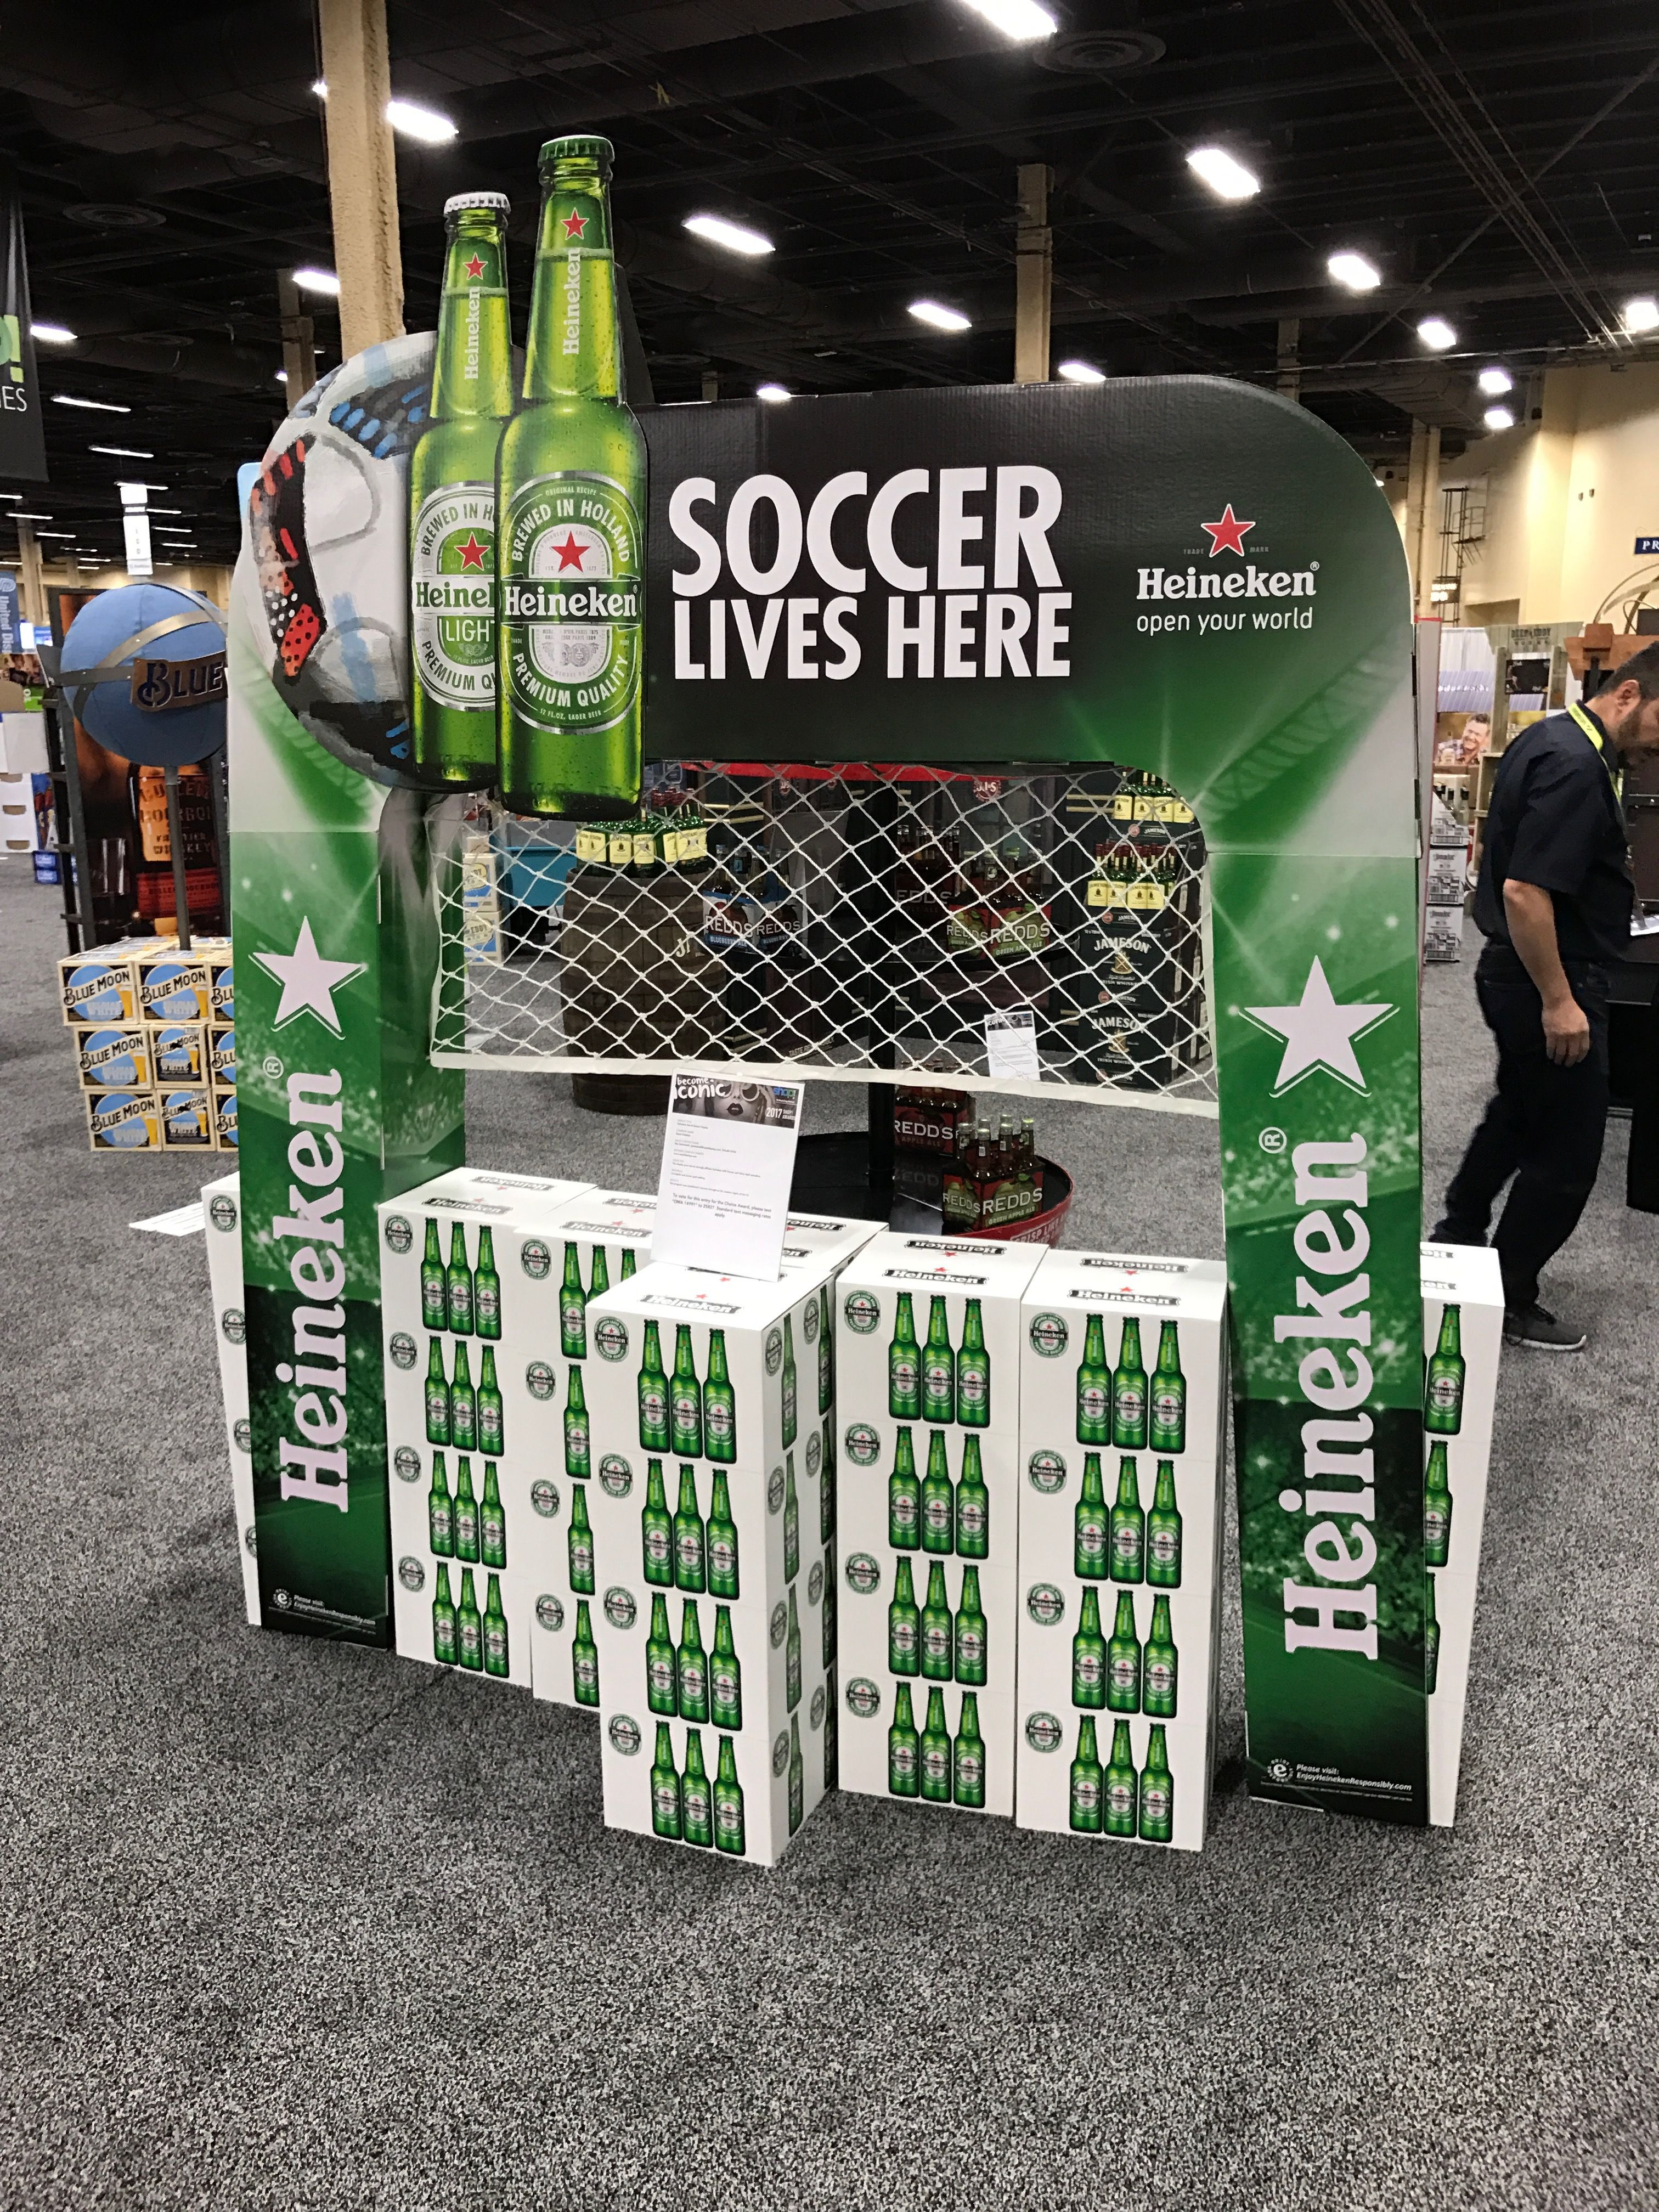 Looking To Purchase This Unit: Heineken 'Soccer Lives Here' Free Standing Unit